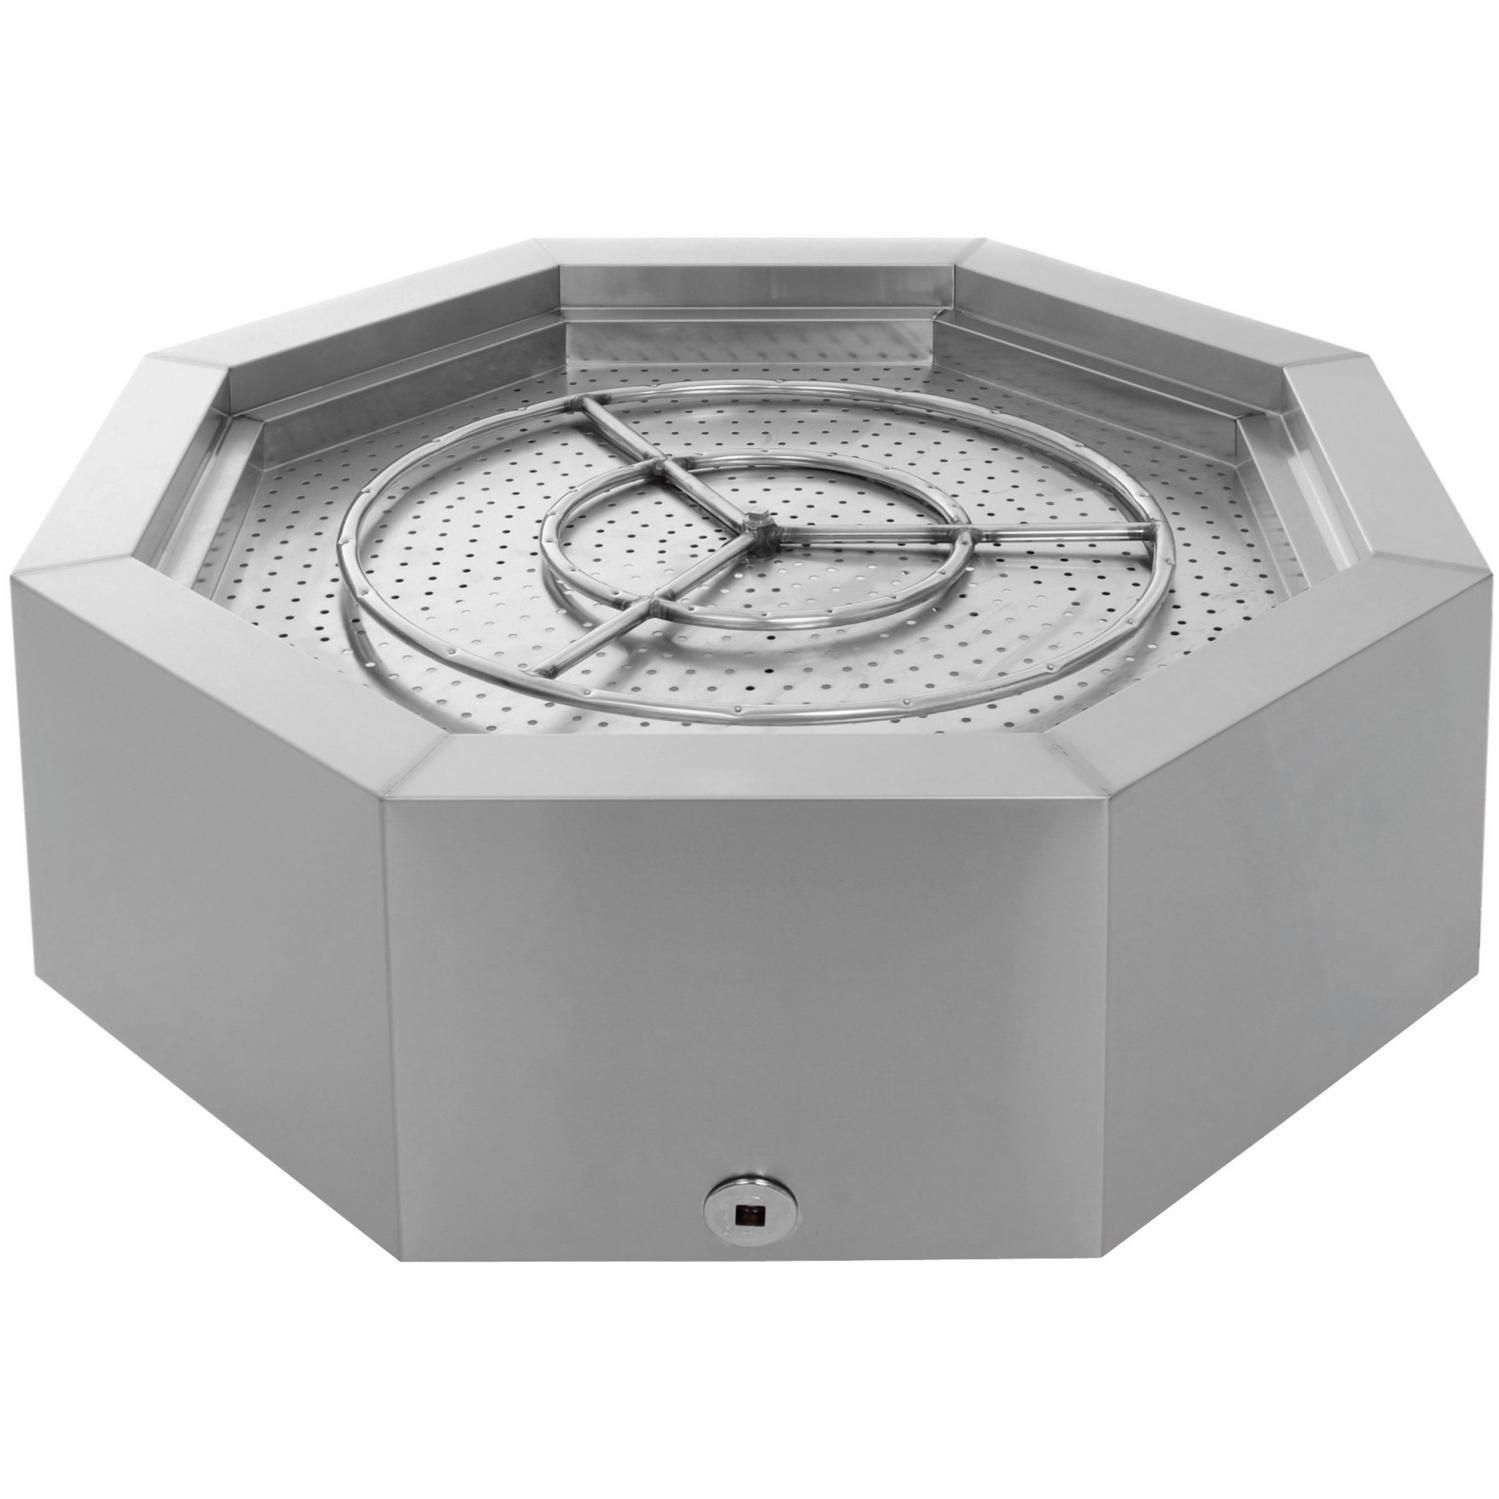 Lakeview Outdoor Designs 42-Inch Stainless Steel Octagon ...